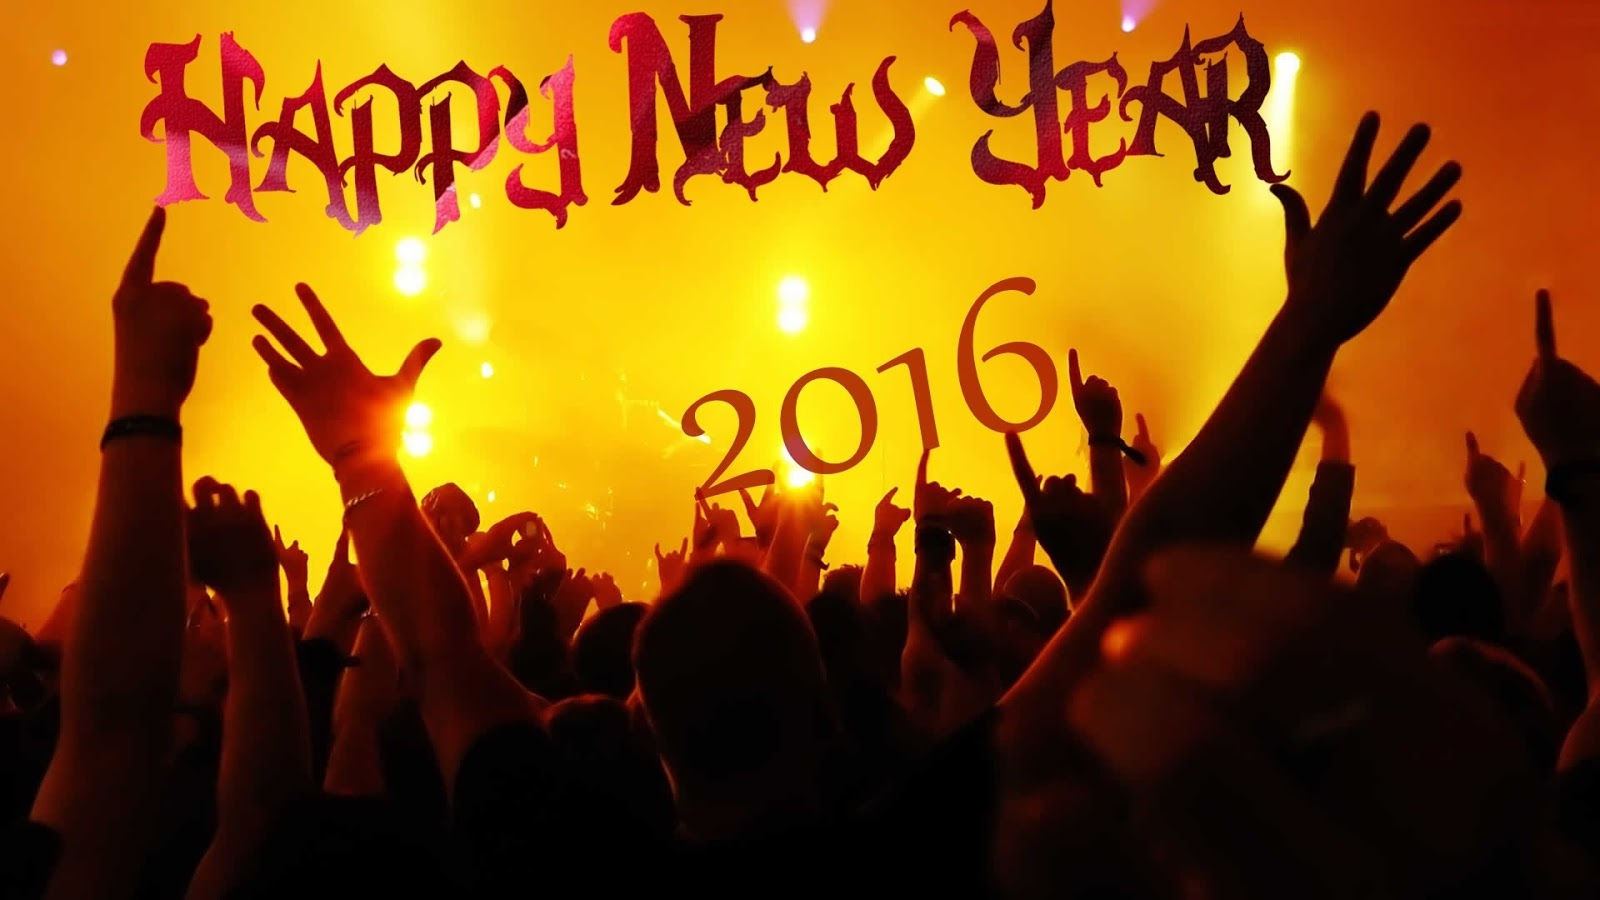 Happy new year 2018 quotes ideas of happy new year wishes for us when our brains have numerous words jumbling up and our minds cannot search for the perfect words to frame this is an amazing collection which will thecheapjerseys Choice Image